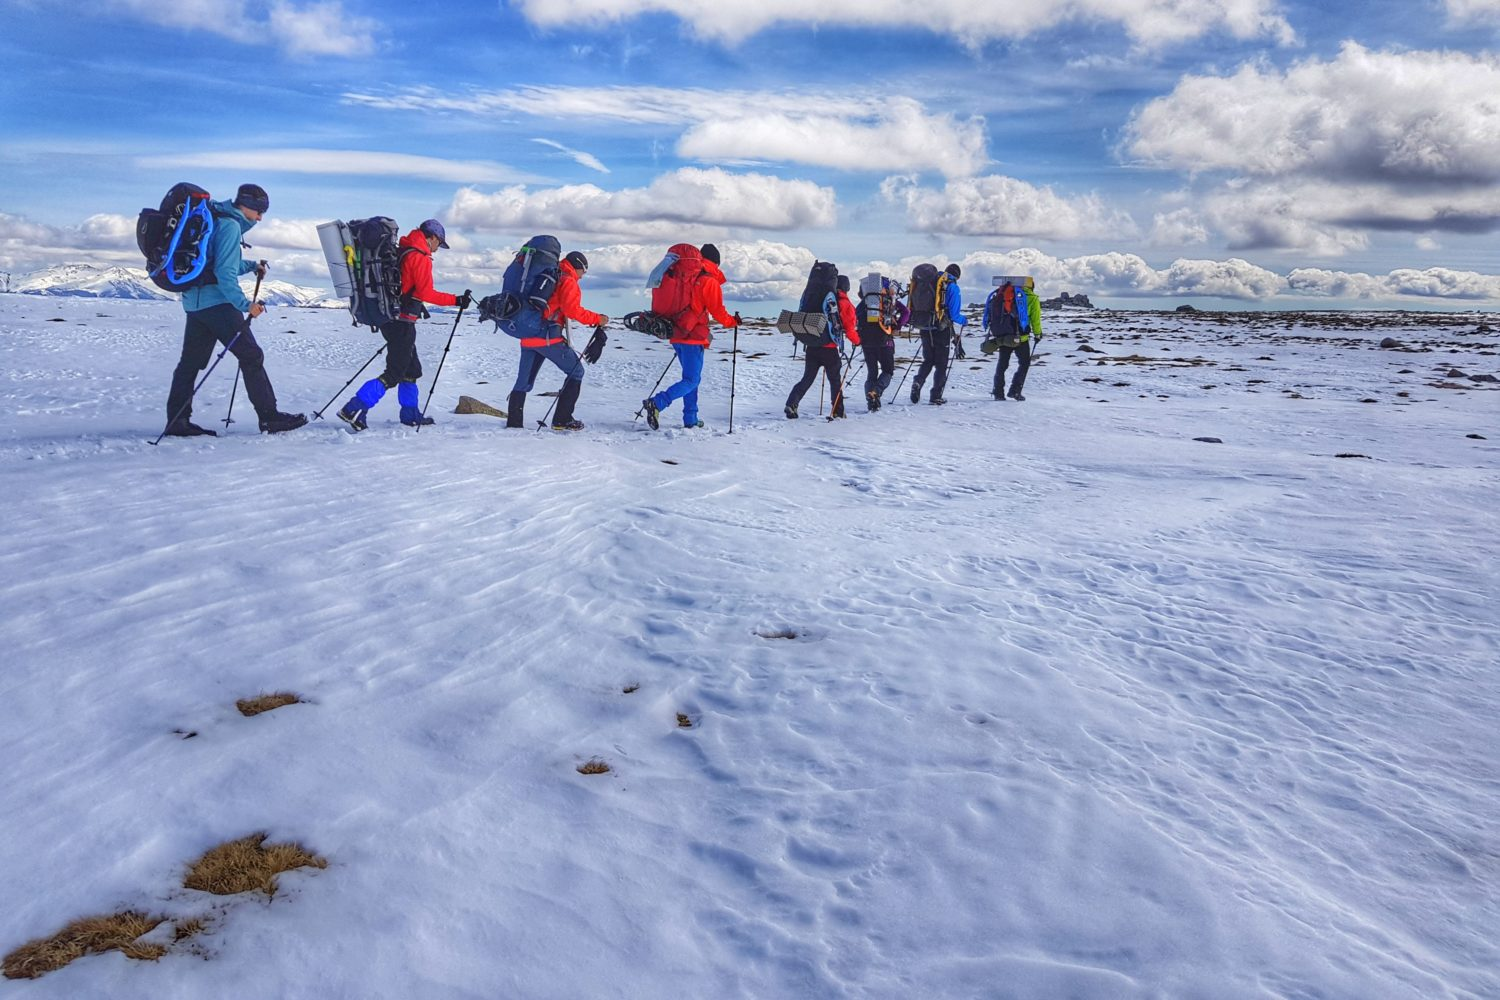 The small group and highly personalized snowshoeing tours in the Pyrenees